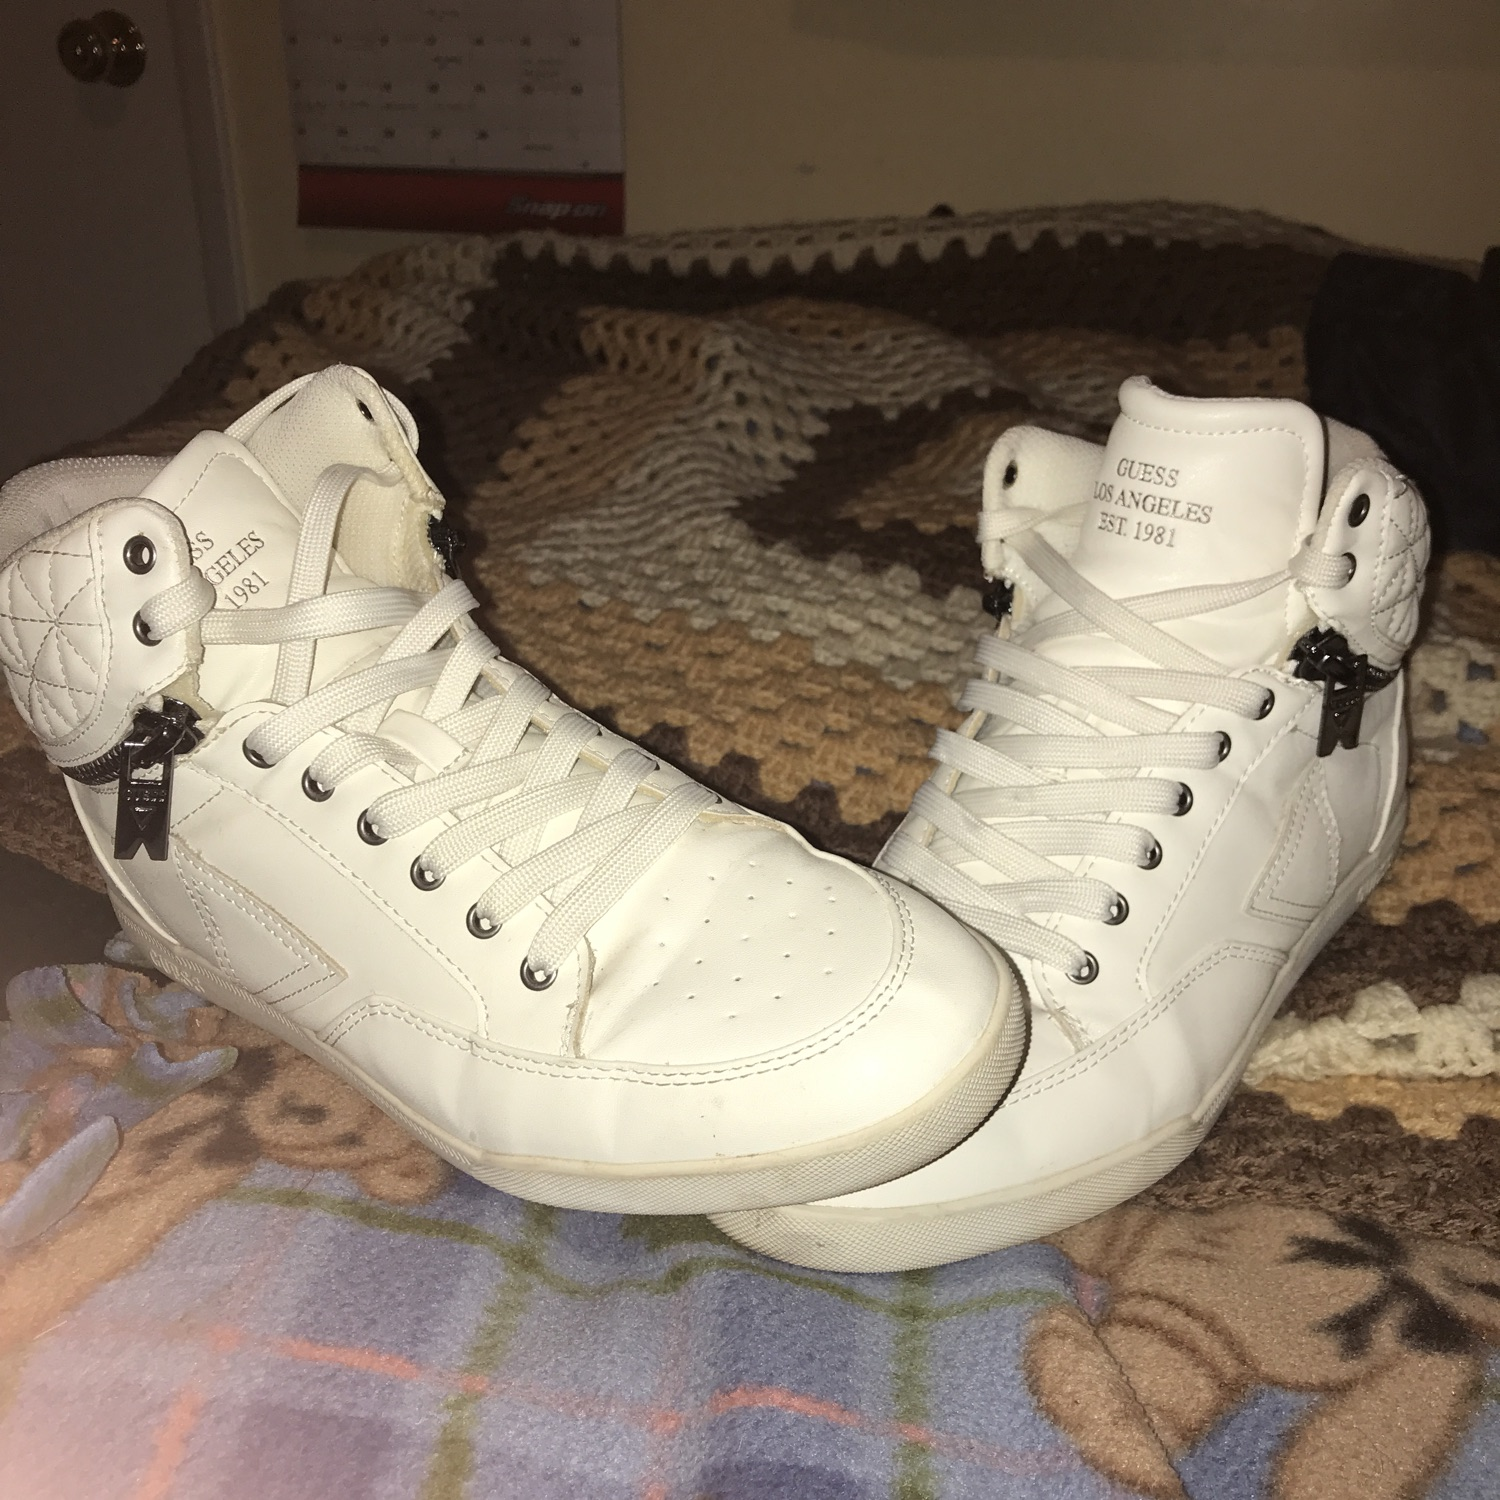 Guess White Leather Shoes